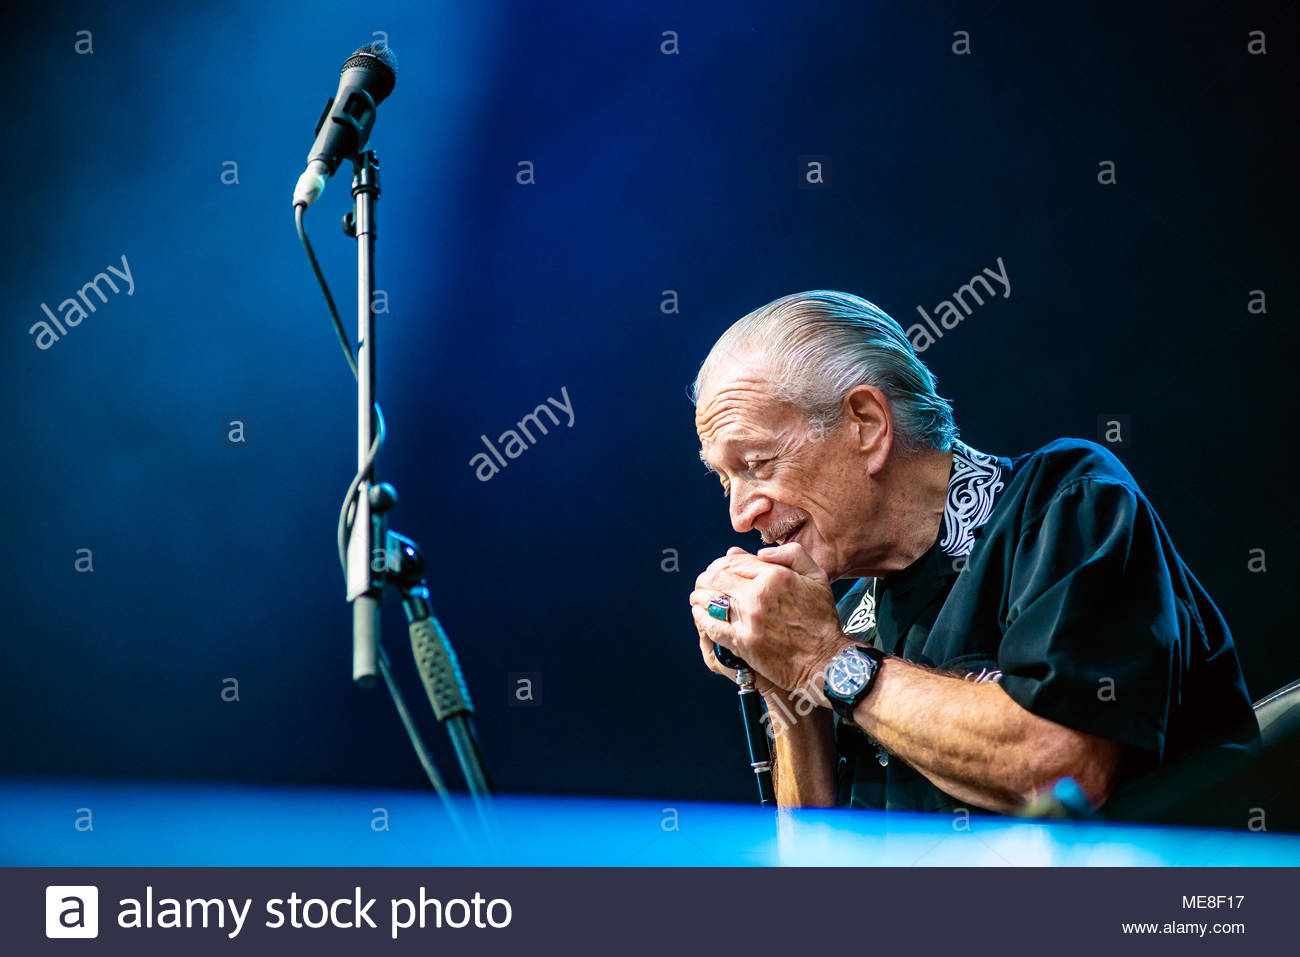 Chamonix, France, 21 April 2018. Charlie Musselwhite performing live (with Ben Harper) at at MUSILAC Mont-Blanc festival in Chamonix (France) - 21 april 2018 Credit: Olivier Parent/Alamy Live News Stock Photo